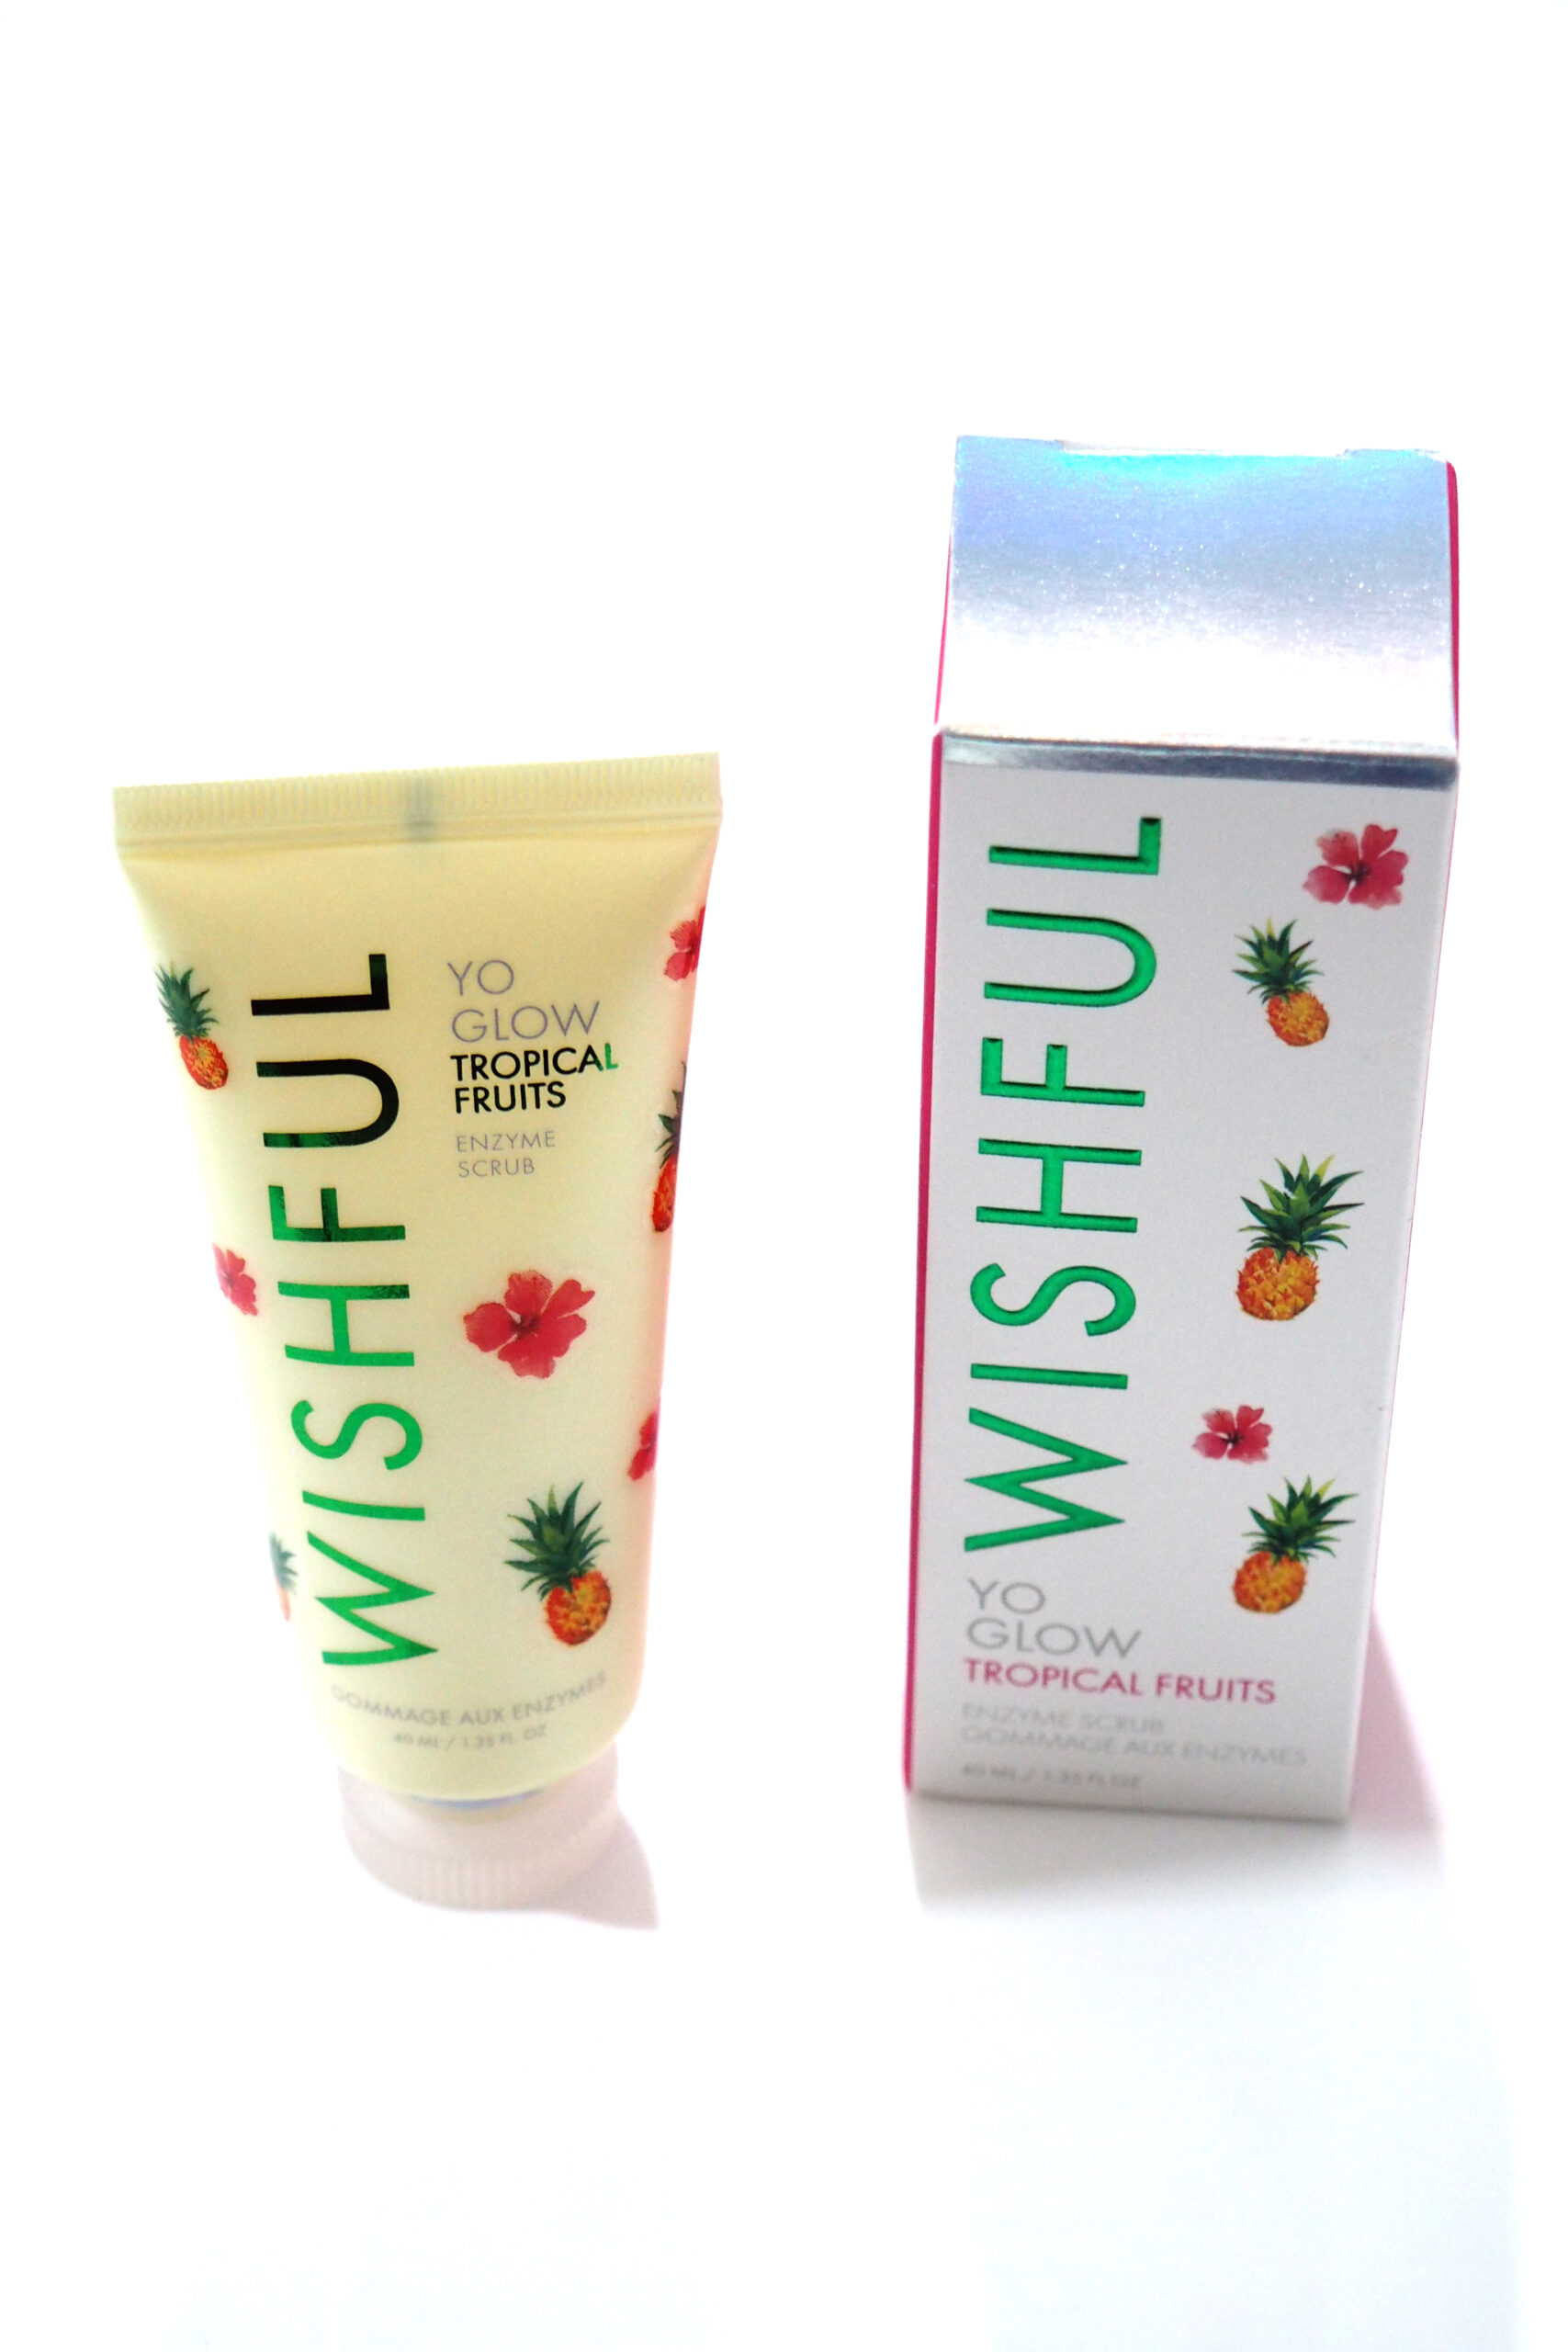 Wishful Yo Glow Tropical Fruits Enzyme Scrub Review